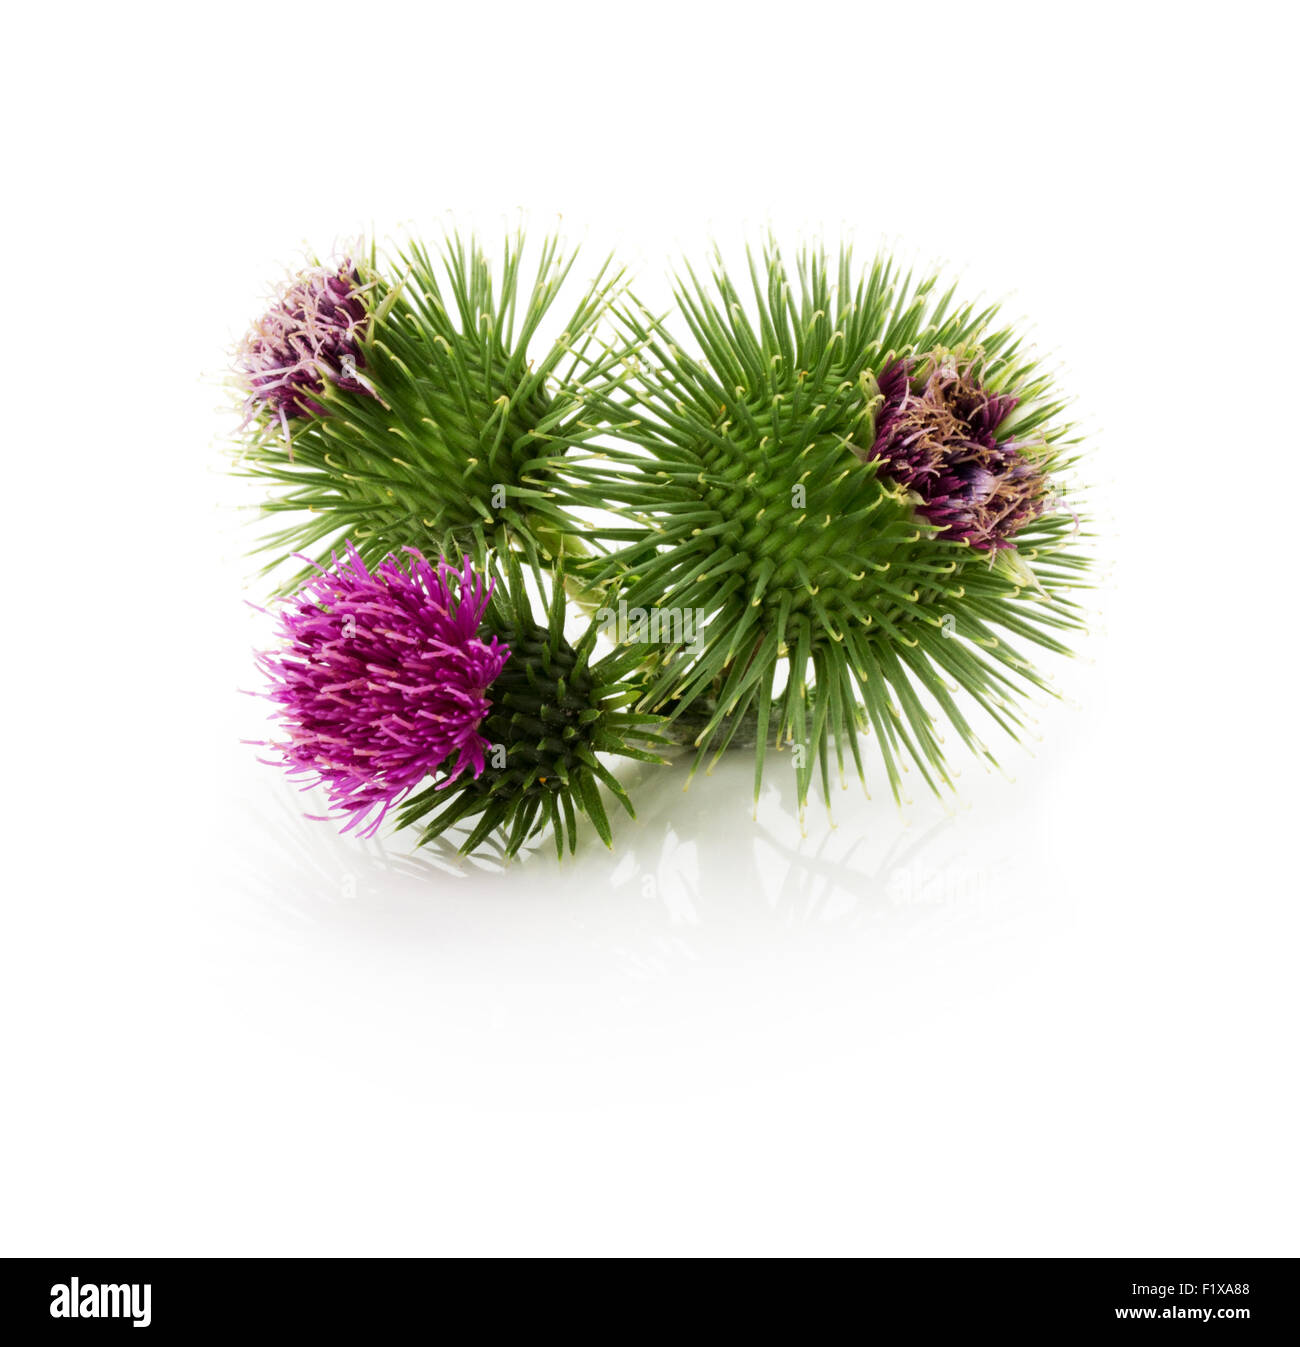 thistle flowers isolated on the white background. - Stock Image